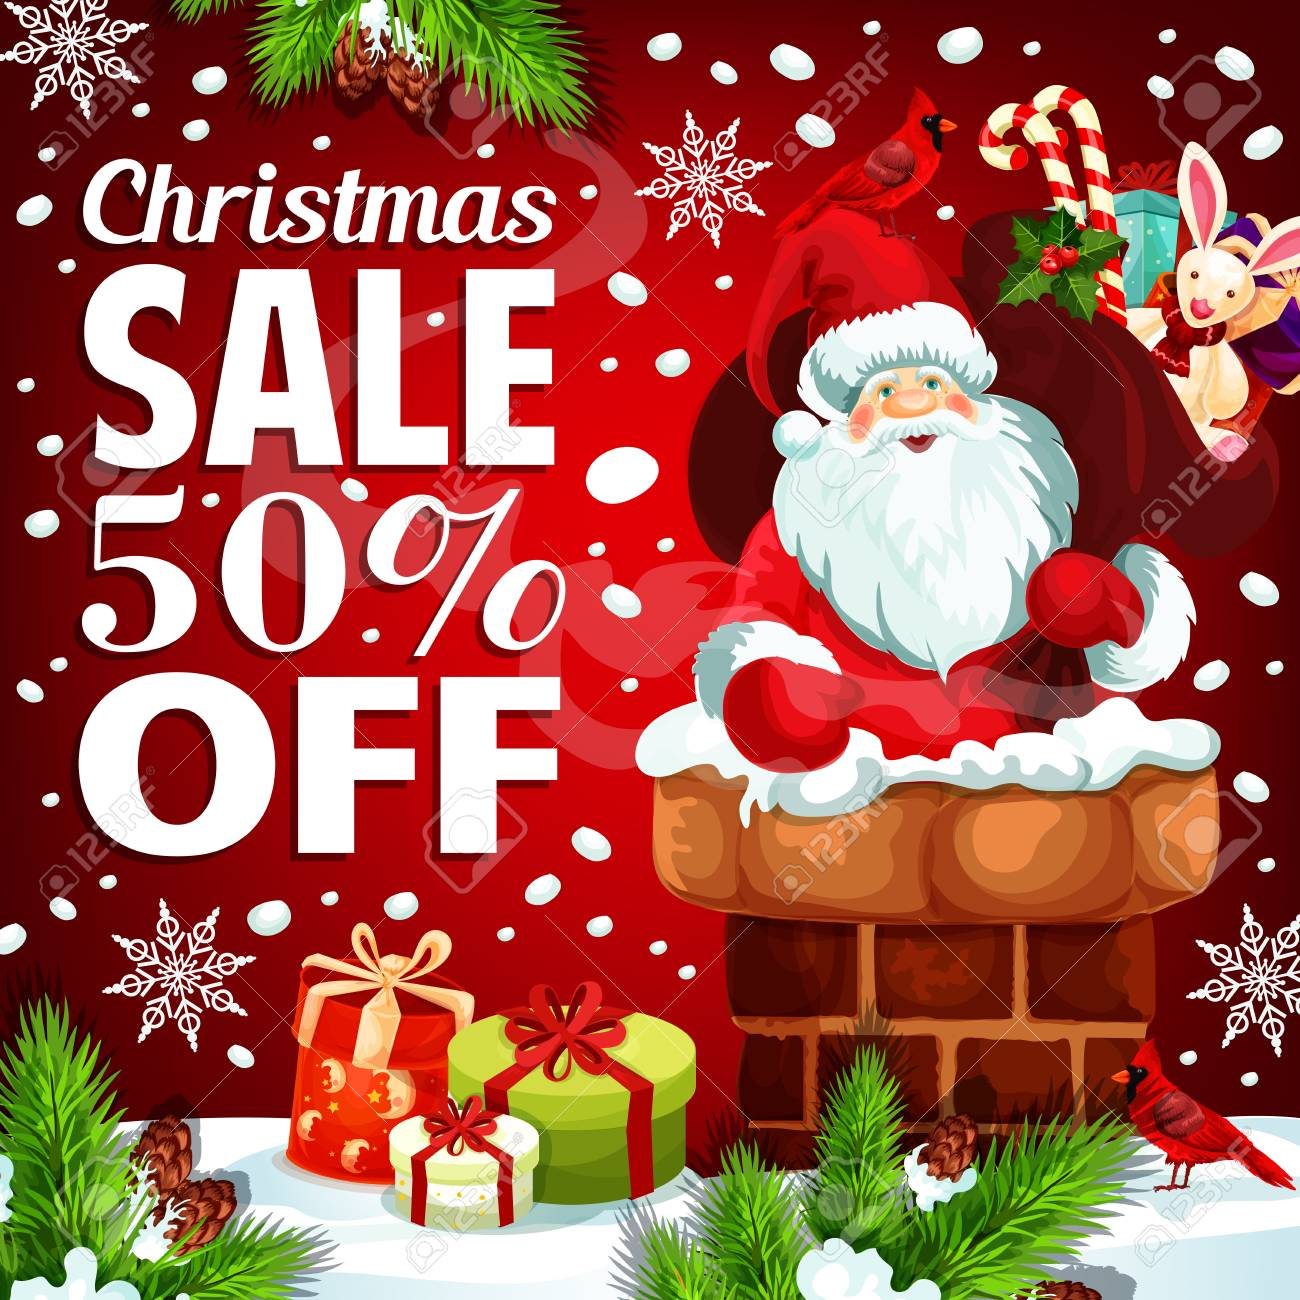 Christmas Sale Poster For Winter Holiday Gift Shop Discount Offer ...